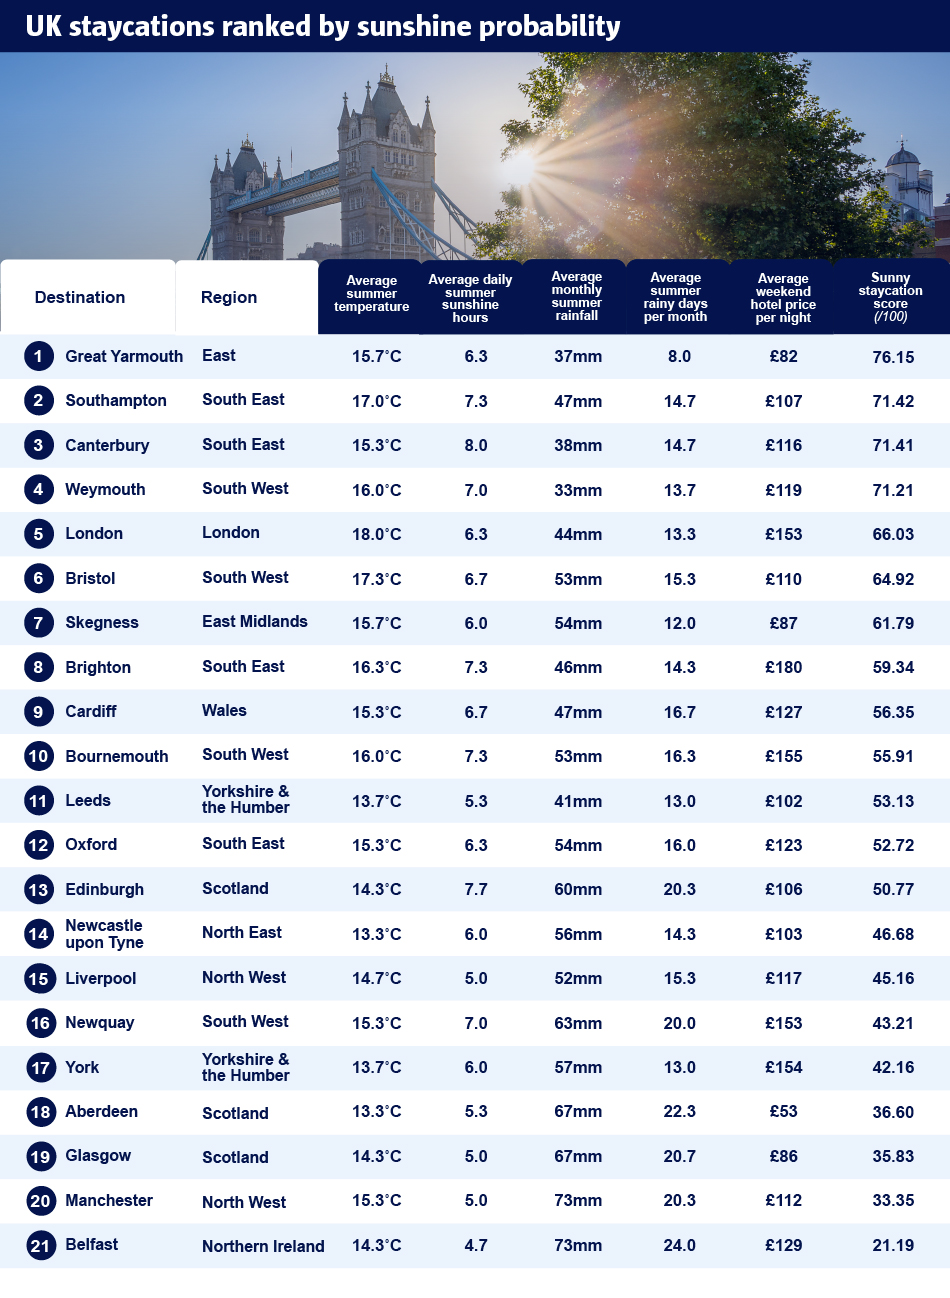 UK Staycations ranked by sunshine probability